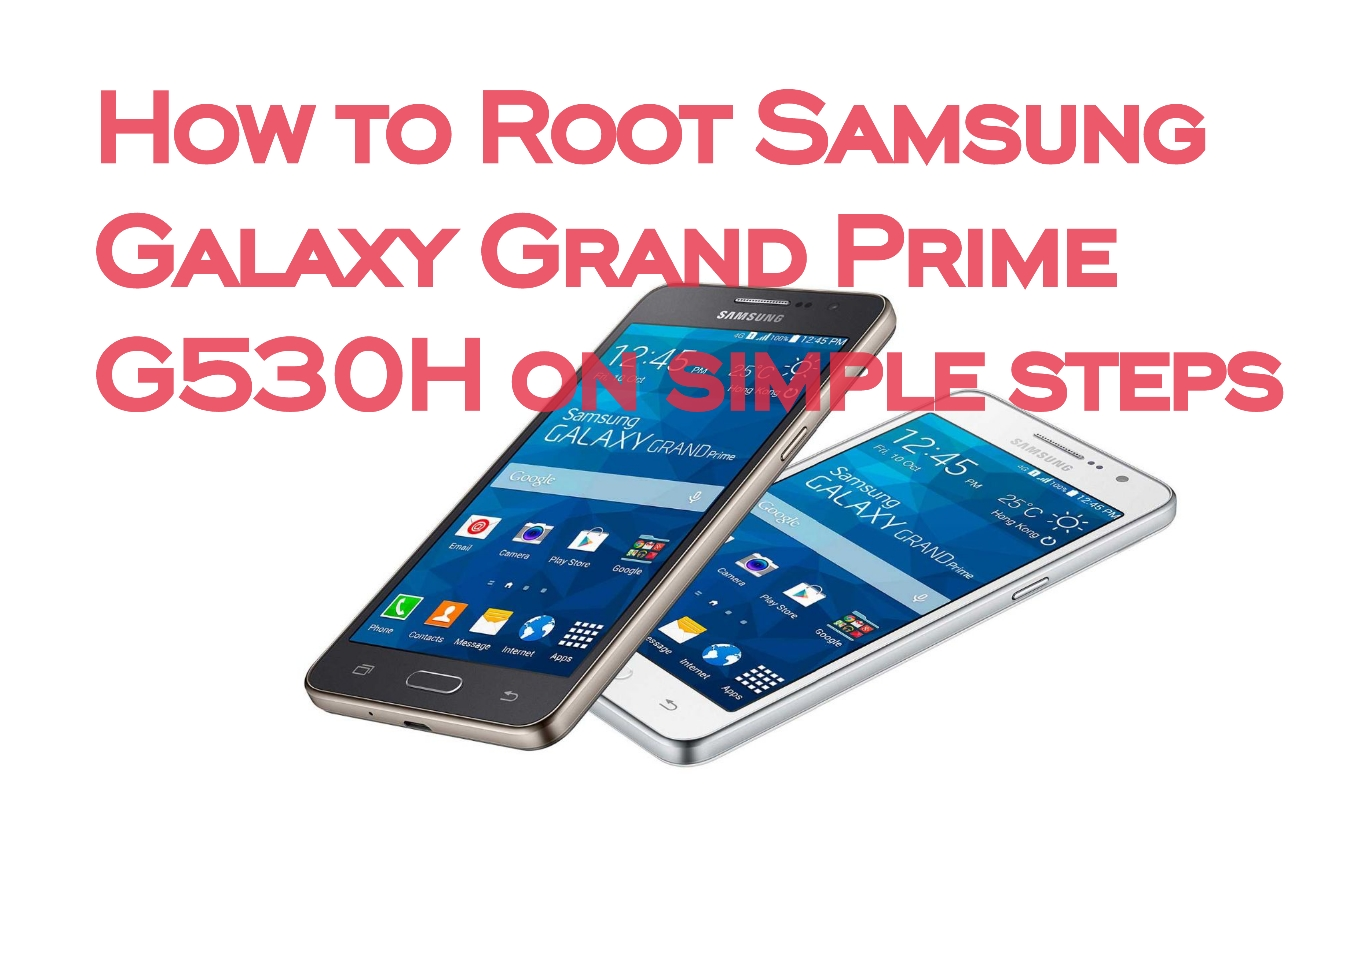 6c05b877c Today we share how to Root Samsung galaxy grand prime G530H on simple  steps